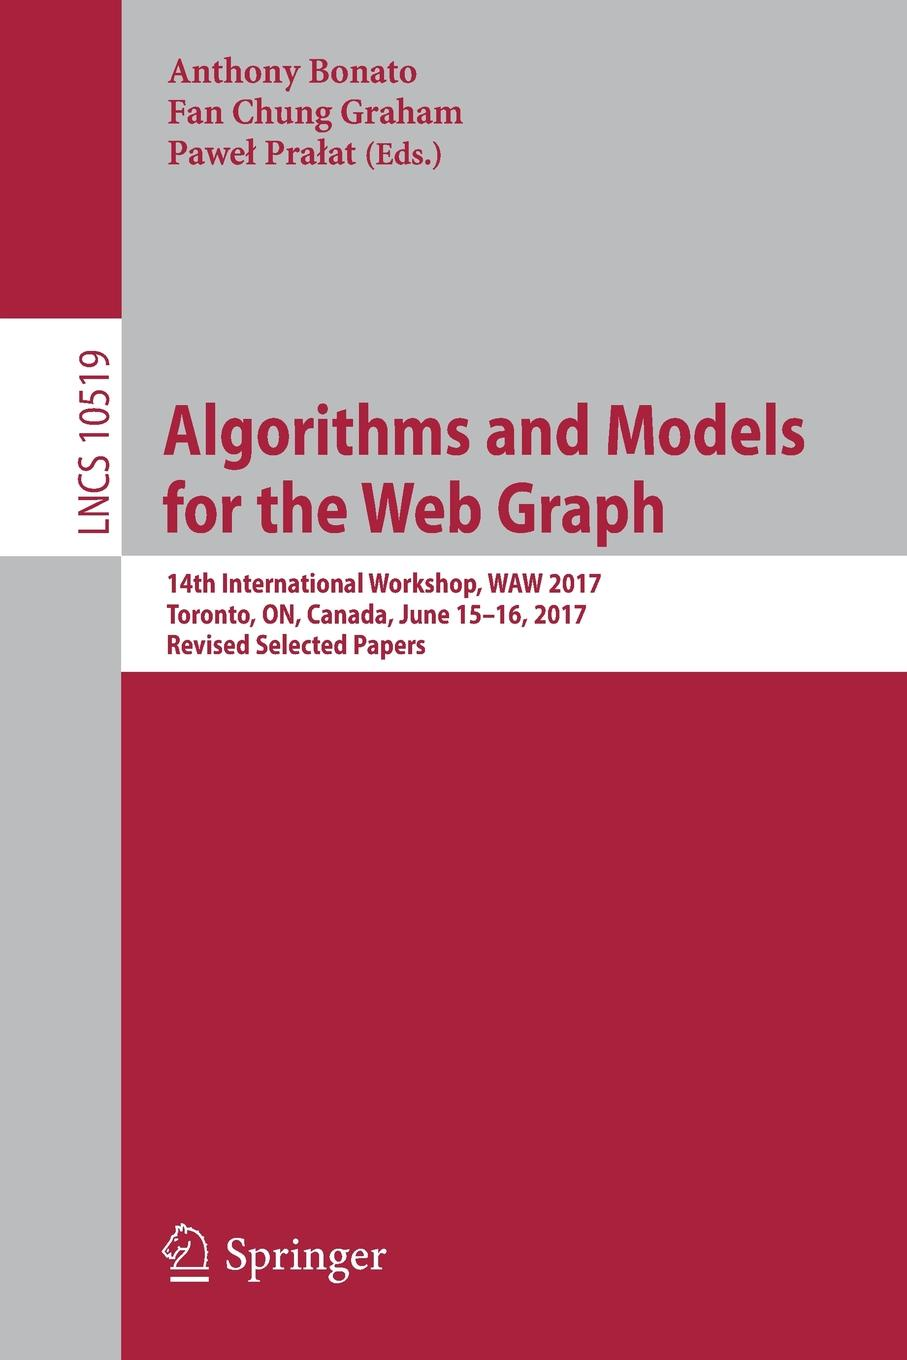 Algorithms and Models for the Web Graph 14th International Workshop WAW 2017 Toronto ON Canada June 15-16 2017 Revised Selected Papers